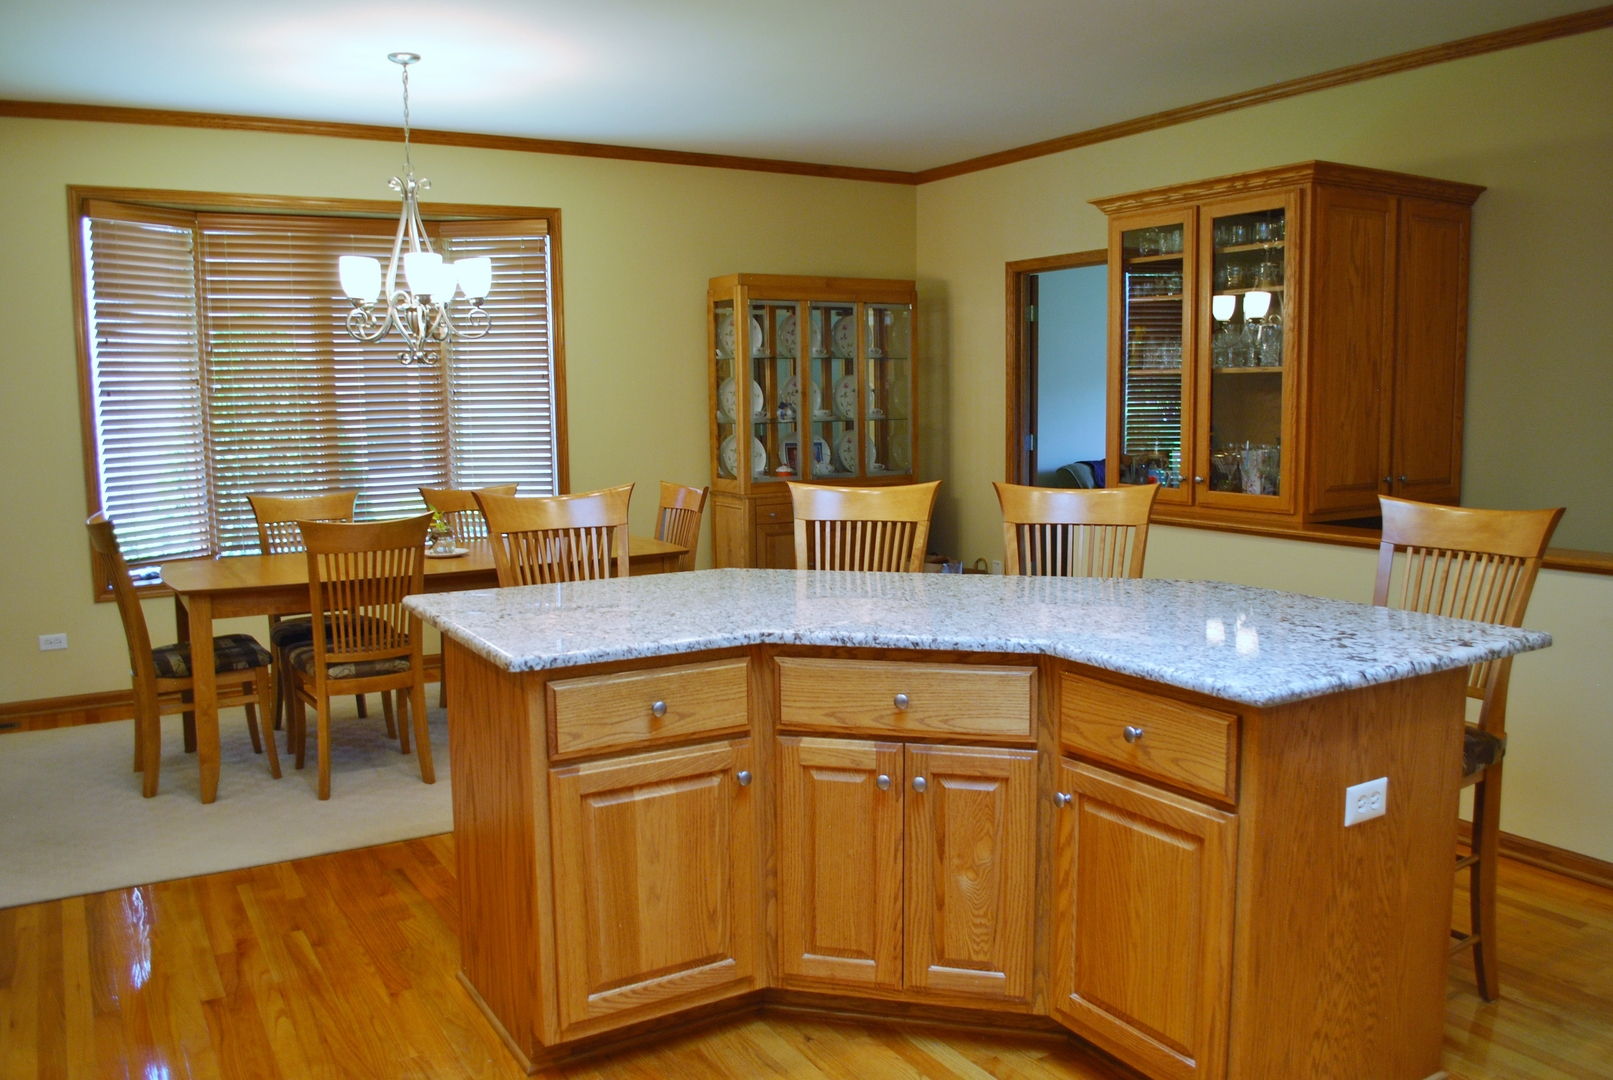 21221 LAKEVIEW, FRANKFORT, Illinois, 60423